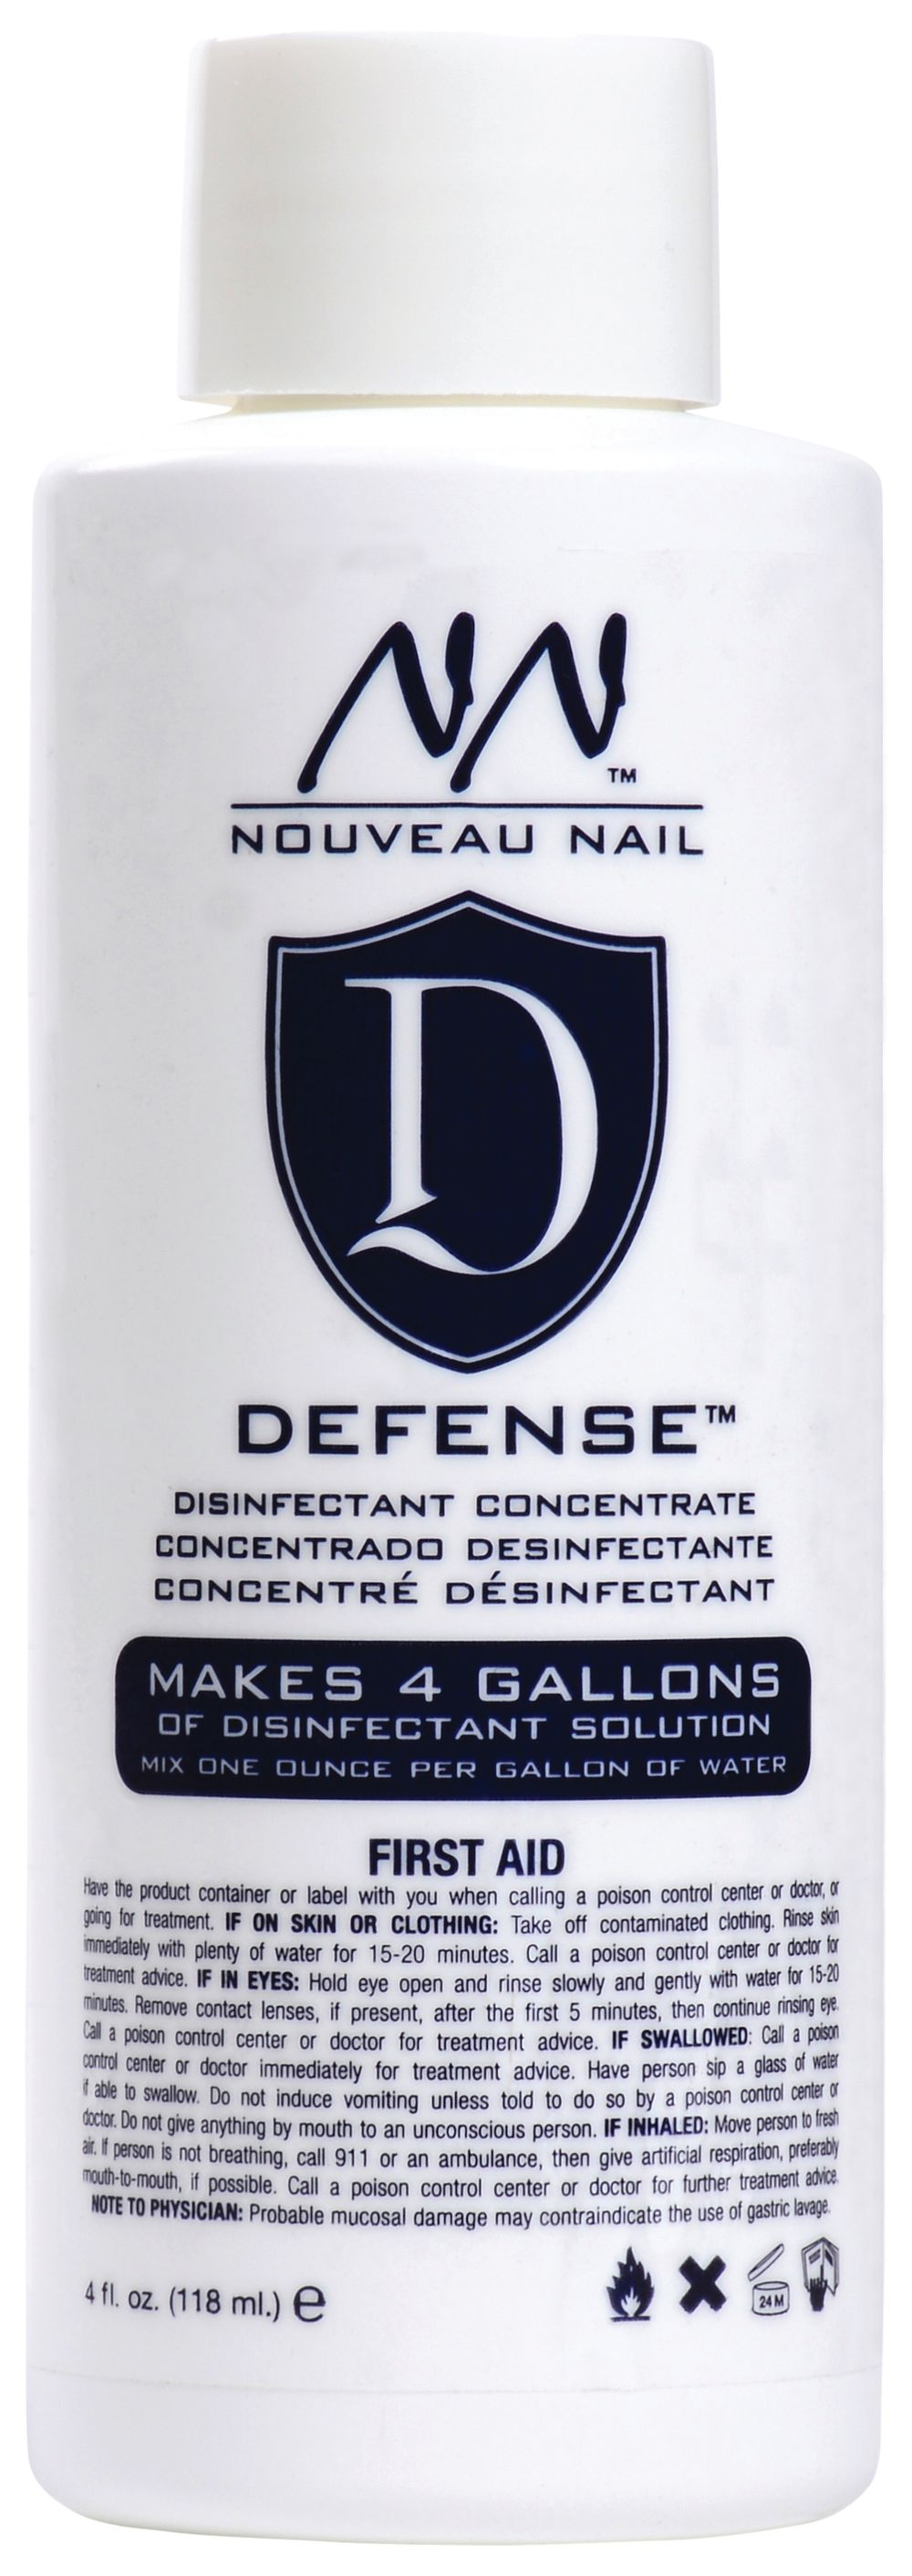 """<p><strong>Nouveau Nail&rsquo;s</strong><span>&nbsp;Defense Disinfectant&nbsp;</span><span>Concentrate is a super-concentrated&nbsp;</span><span>disinfectant solution. One ounce of the&nbsp;</span><span>concentrate makes a full gallon of hospitalgrade&nbsp;</span><span>disinfectant solution to disinfect&nbsp;</span><span>implements, tools, and files.</span><br /><a href=""""http://www.premiernailsource.com/"""">www.premiernailsource.com</a></p>"""